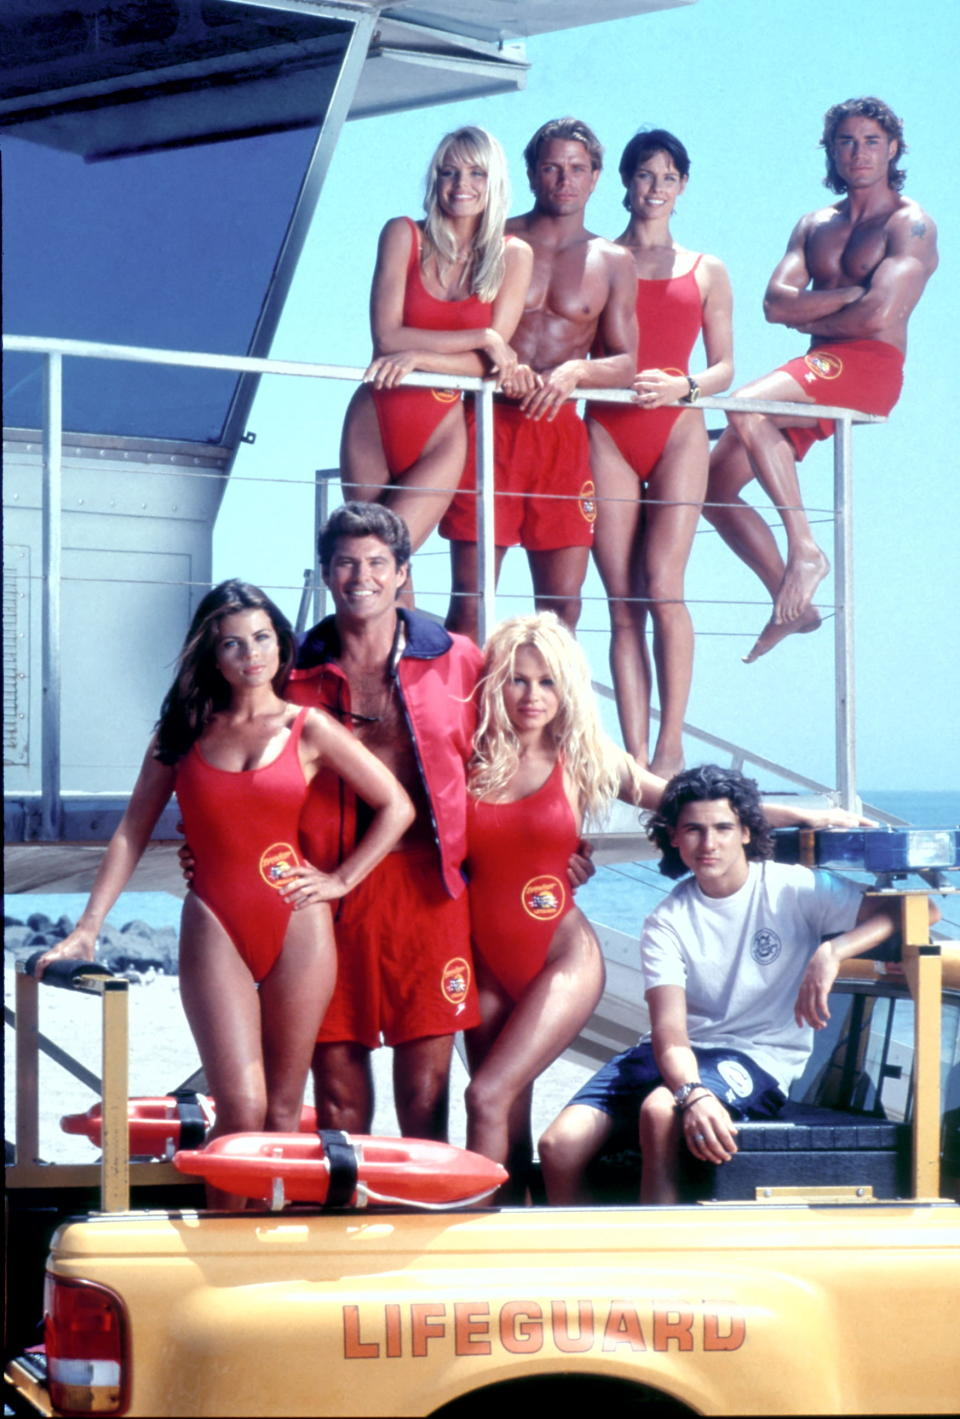 """Pantone has introduced """"Baywatch Red"""" in honor of the show's 30th anniversary. (Photo: Fremantle)"""